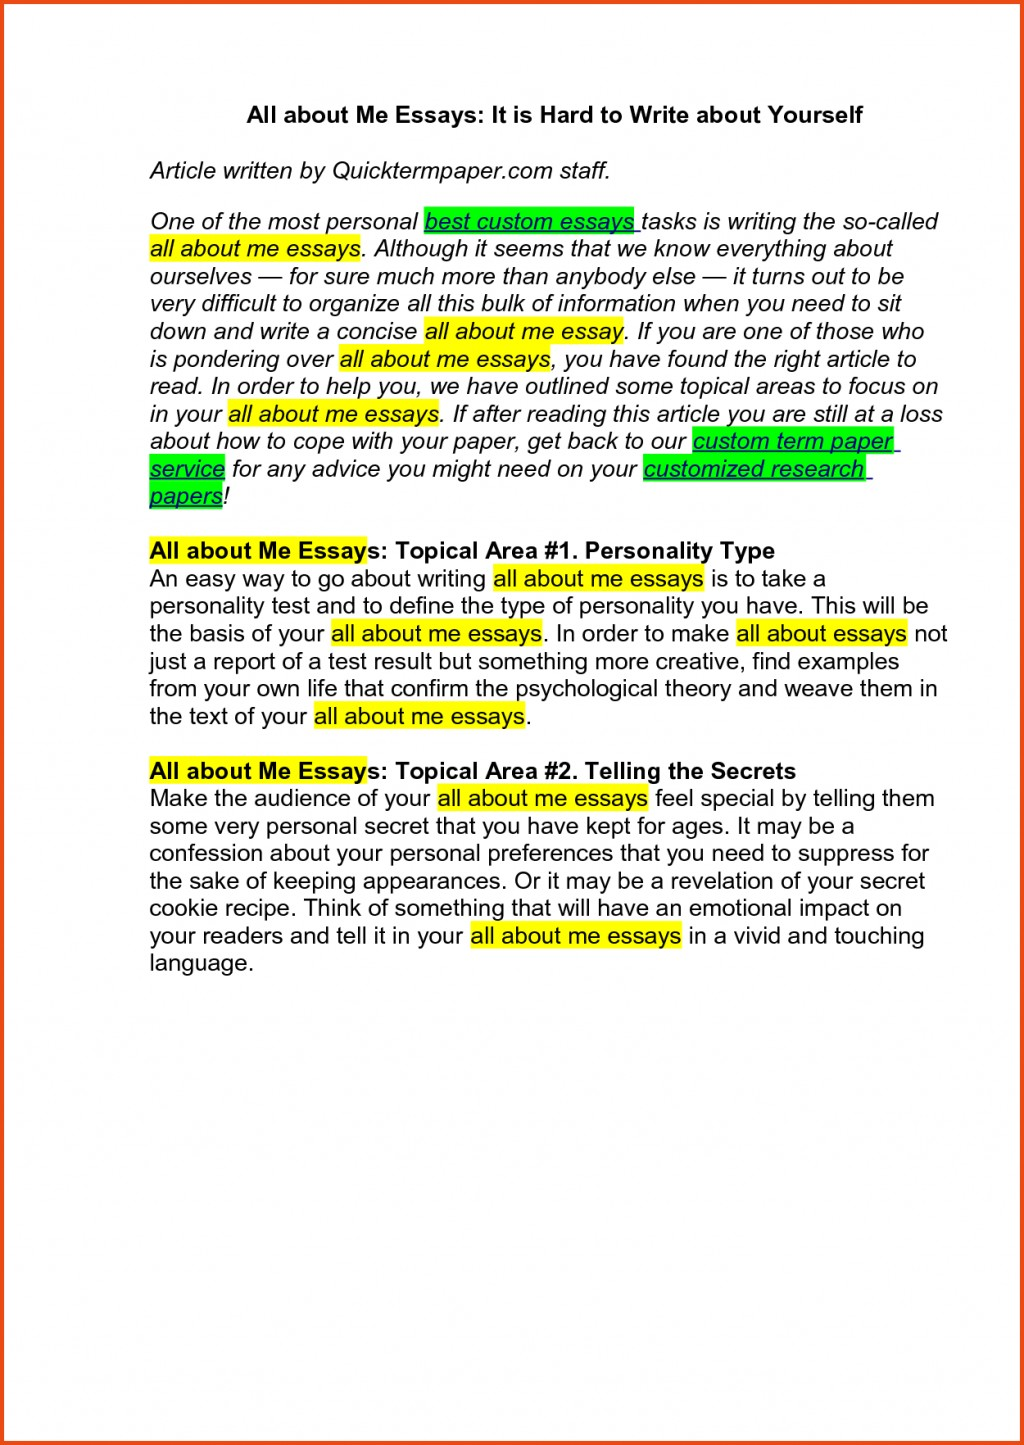 010 Sample College Admissions Essay Good Mba Essays School Application How To Start Your Confortable Resume About Yourselfs In Admis Write Off Strong App Steps Successful Formidable Yourself Example Of Autobiography Tagalog Introduction Large